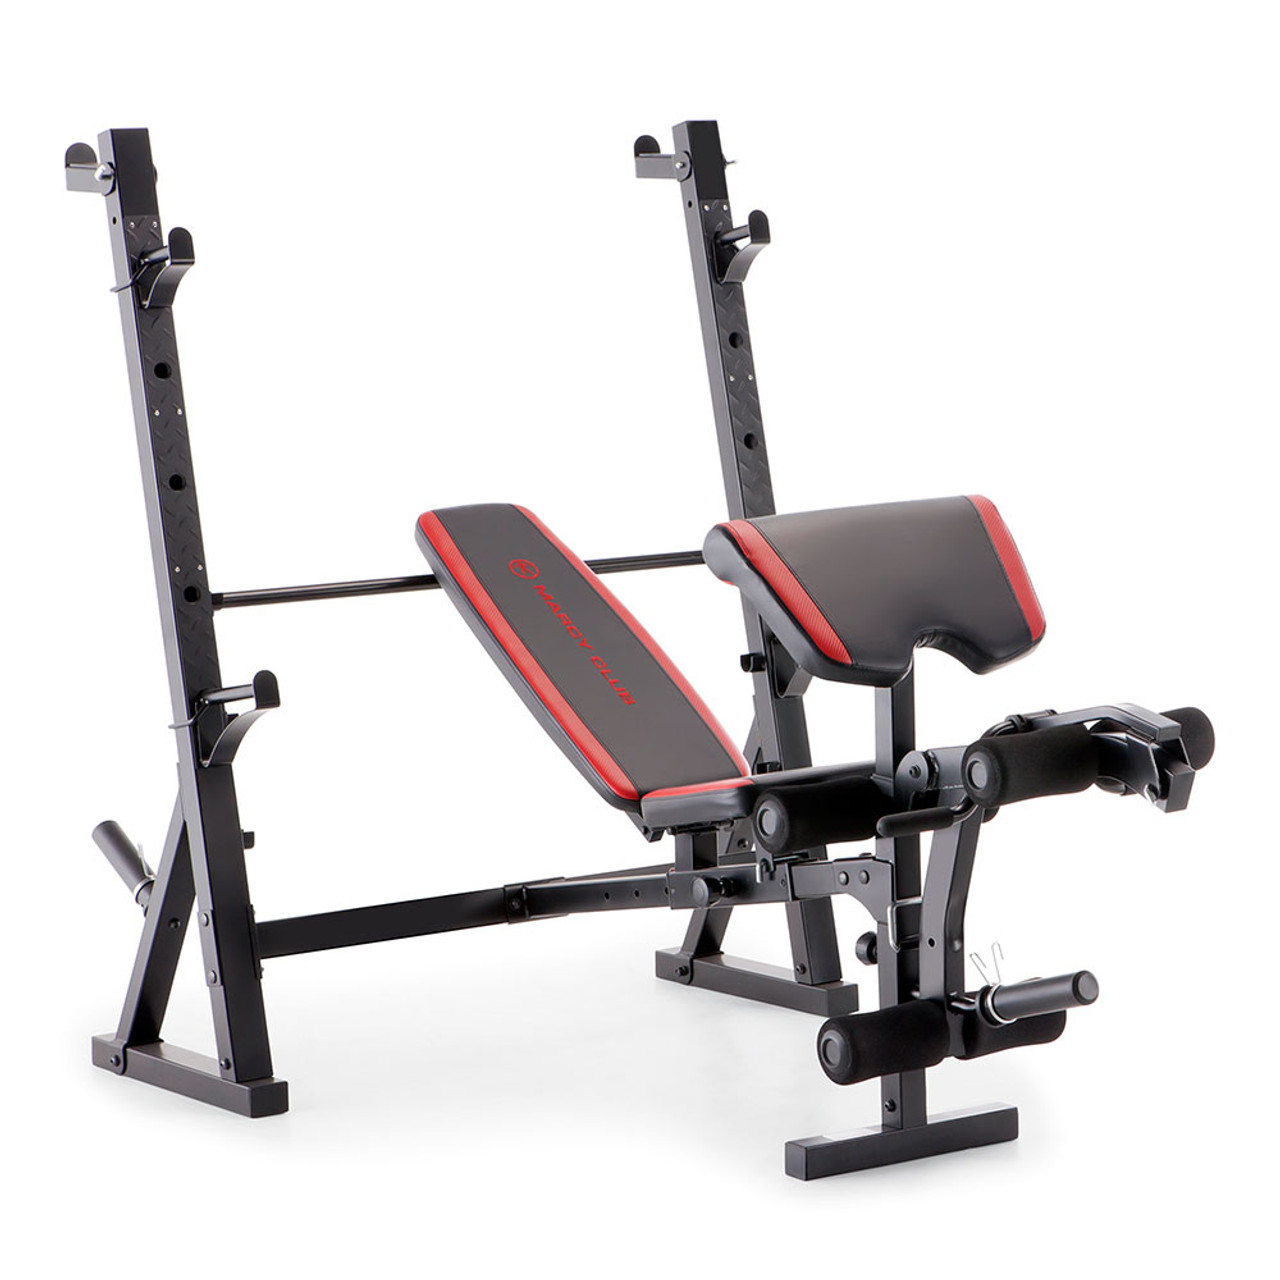 lb weight kp com standard cap bench sets c benches justdealsstore set deluxe with olympic strength